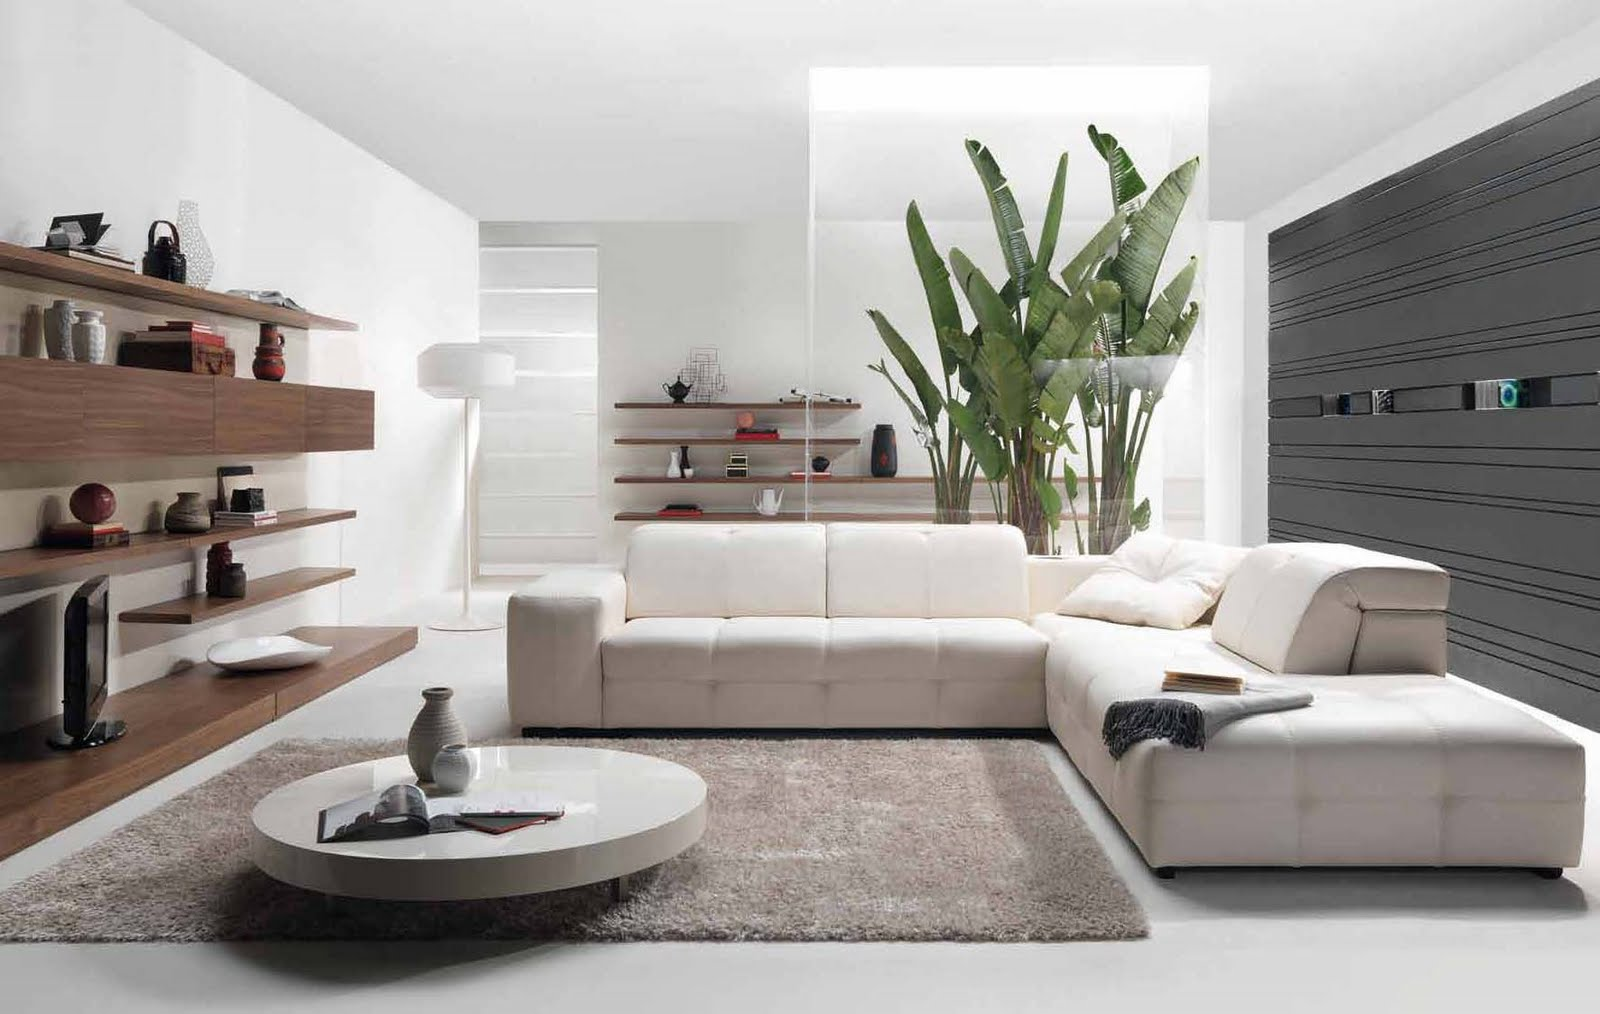 Future house design modern living room interior design for Pictures of modern living rooms decorated